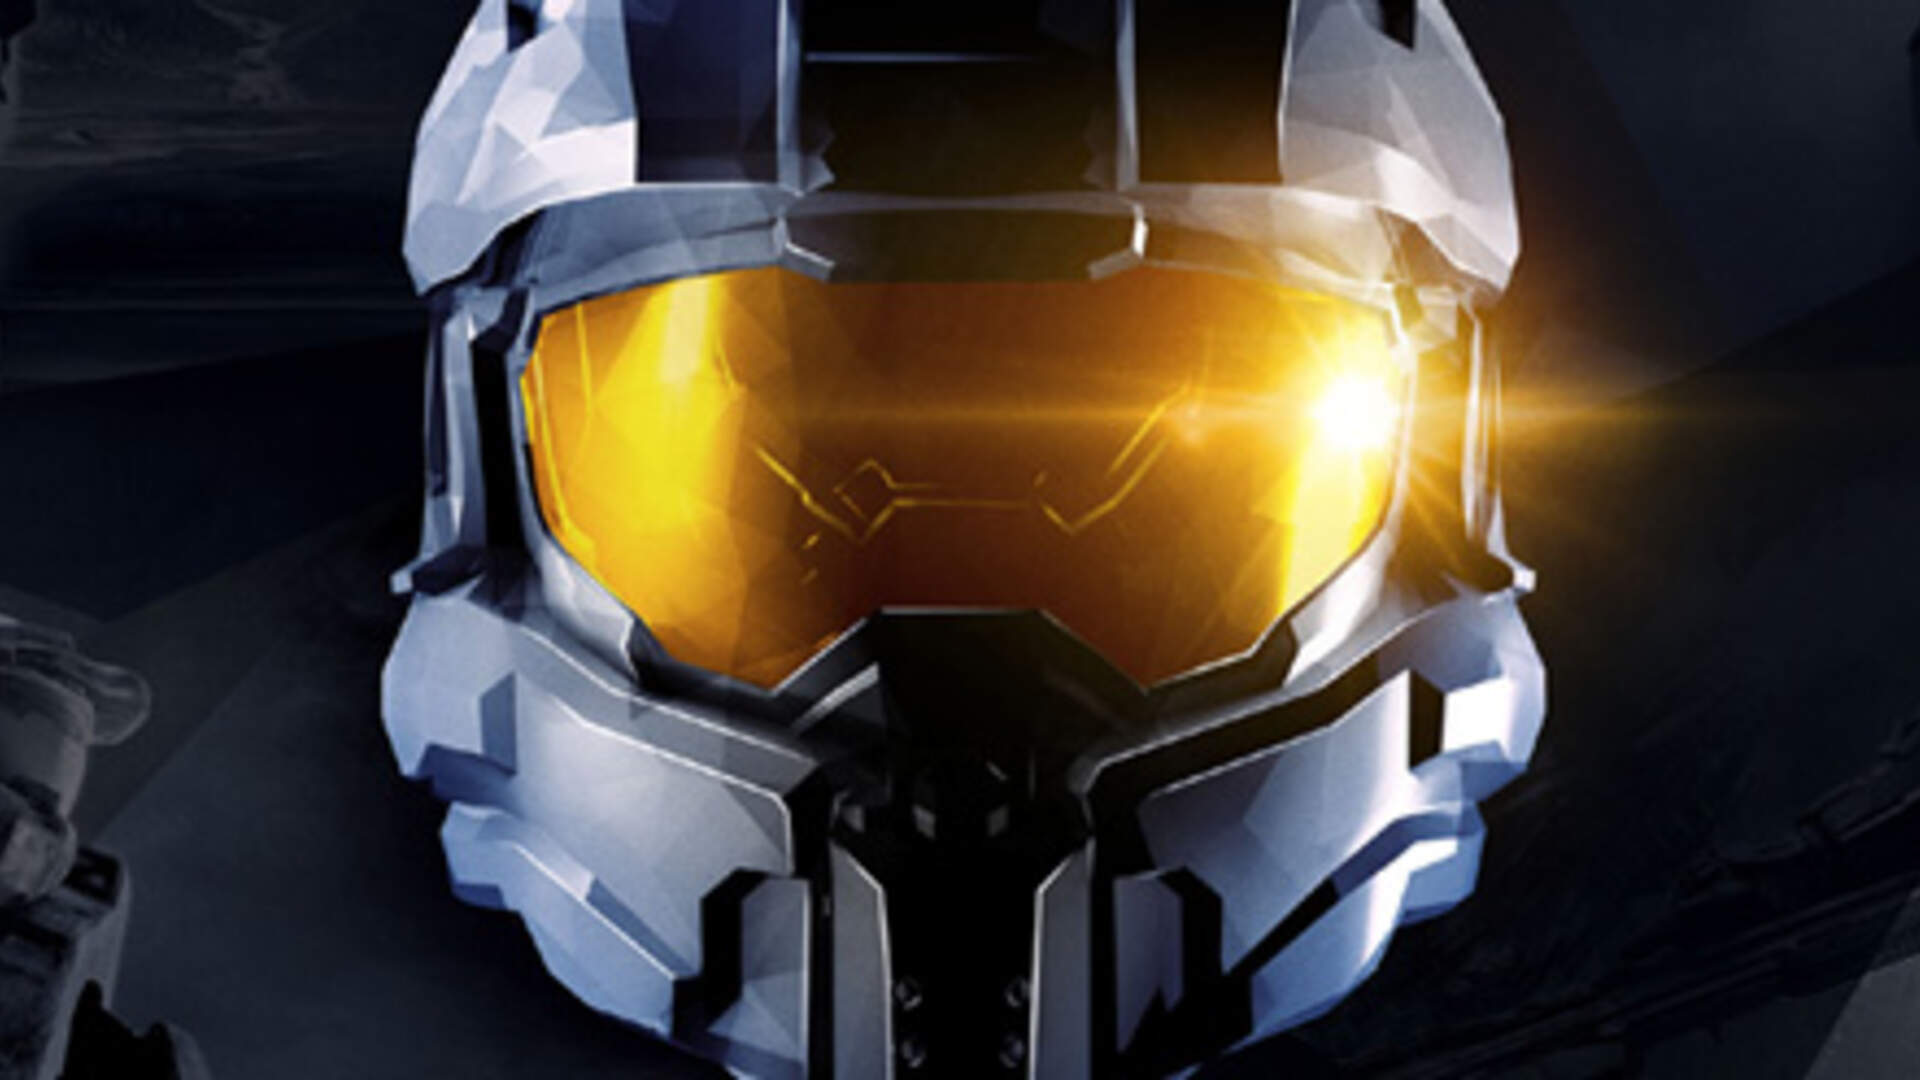 The Best Halo Game (and Three Others) are Available for Xbox One Backwards Compatibility Today